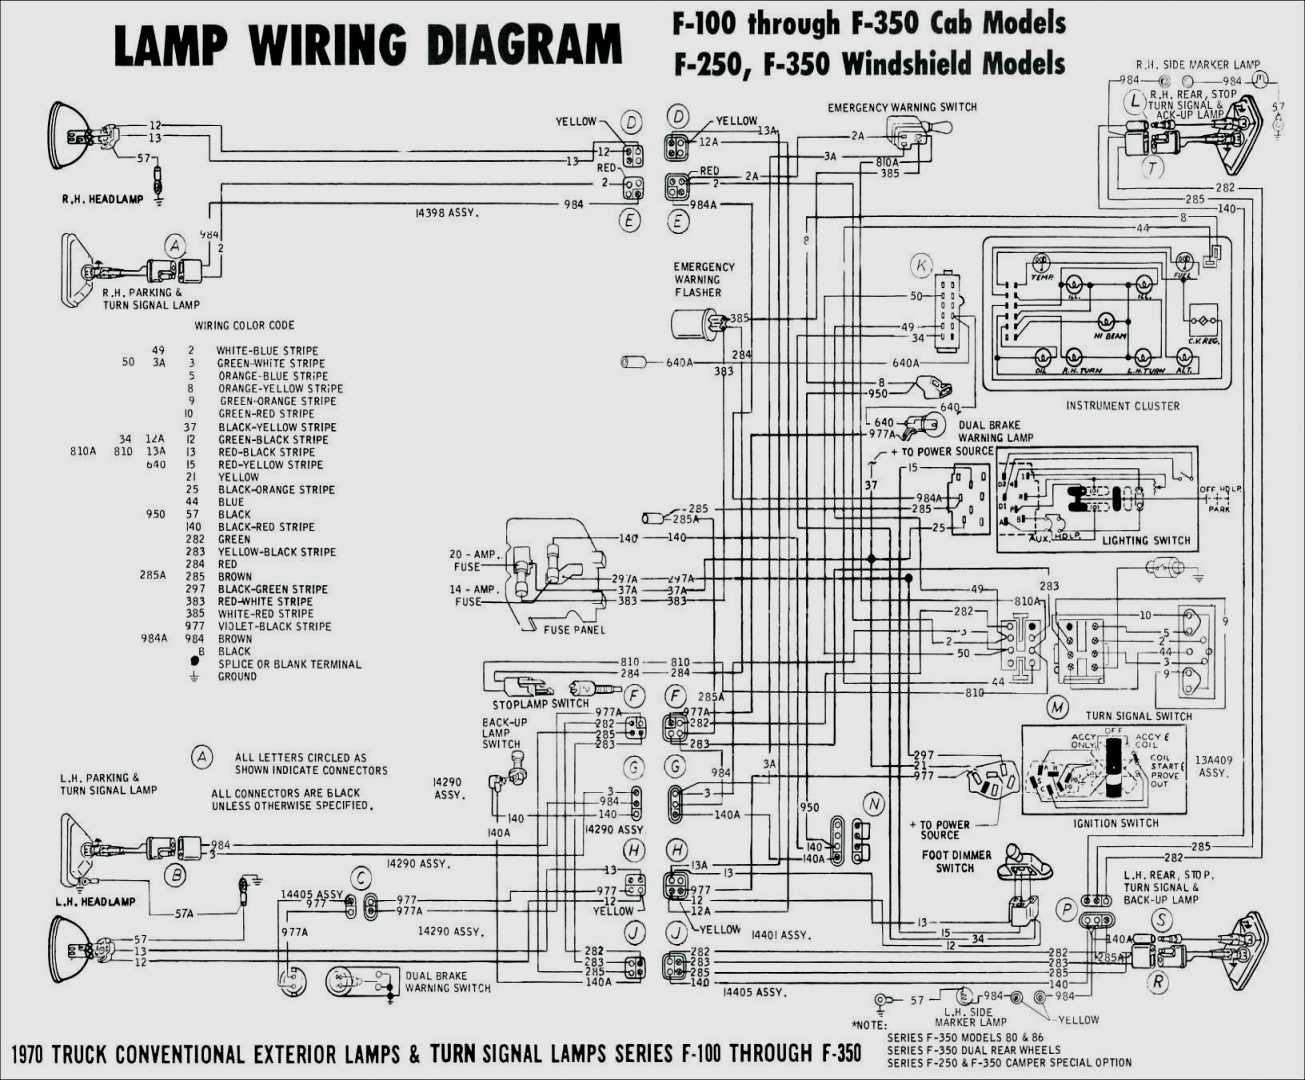 Kubota Ignition Switch Wiring Diagram John Deere Ignition Wiring - Kubota Ignition Switch Wiring Diagram